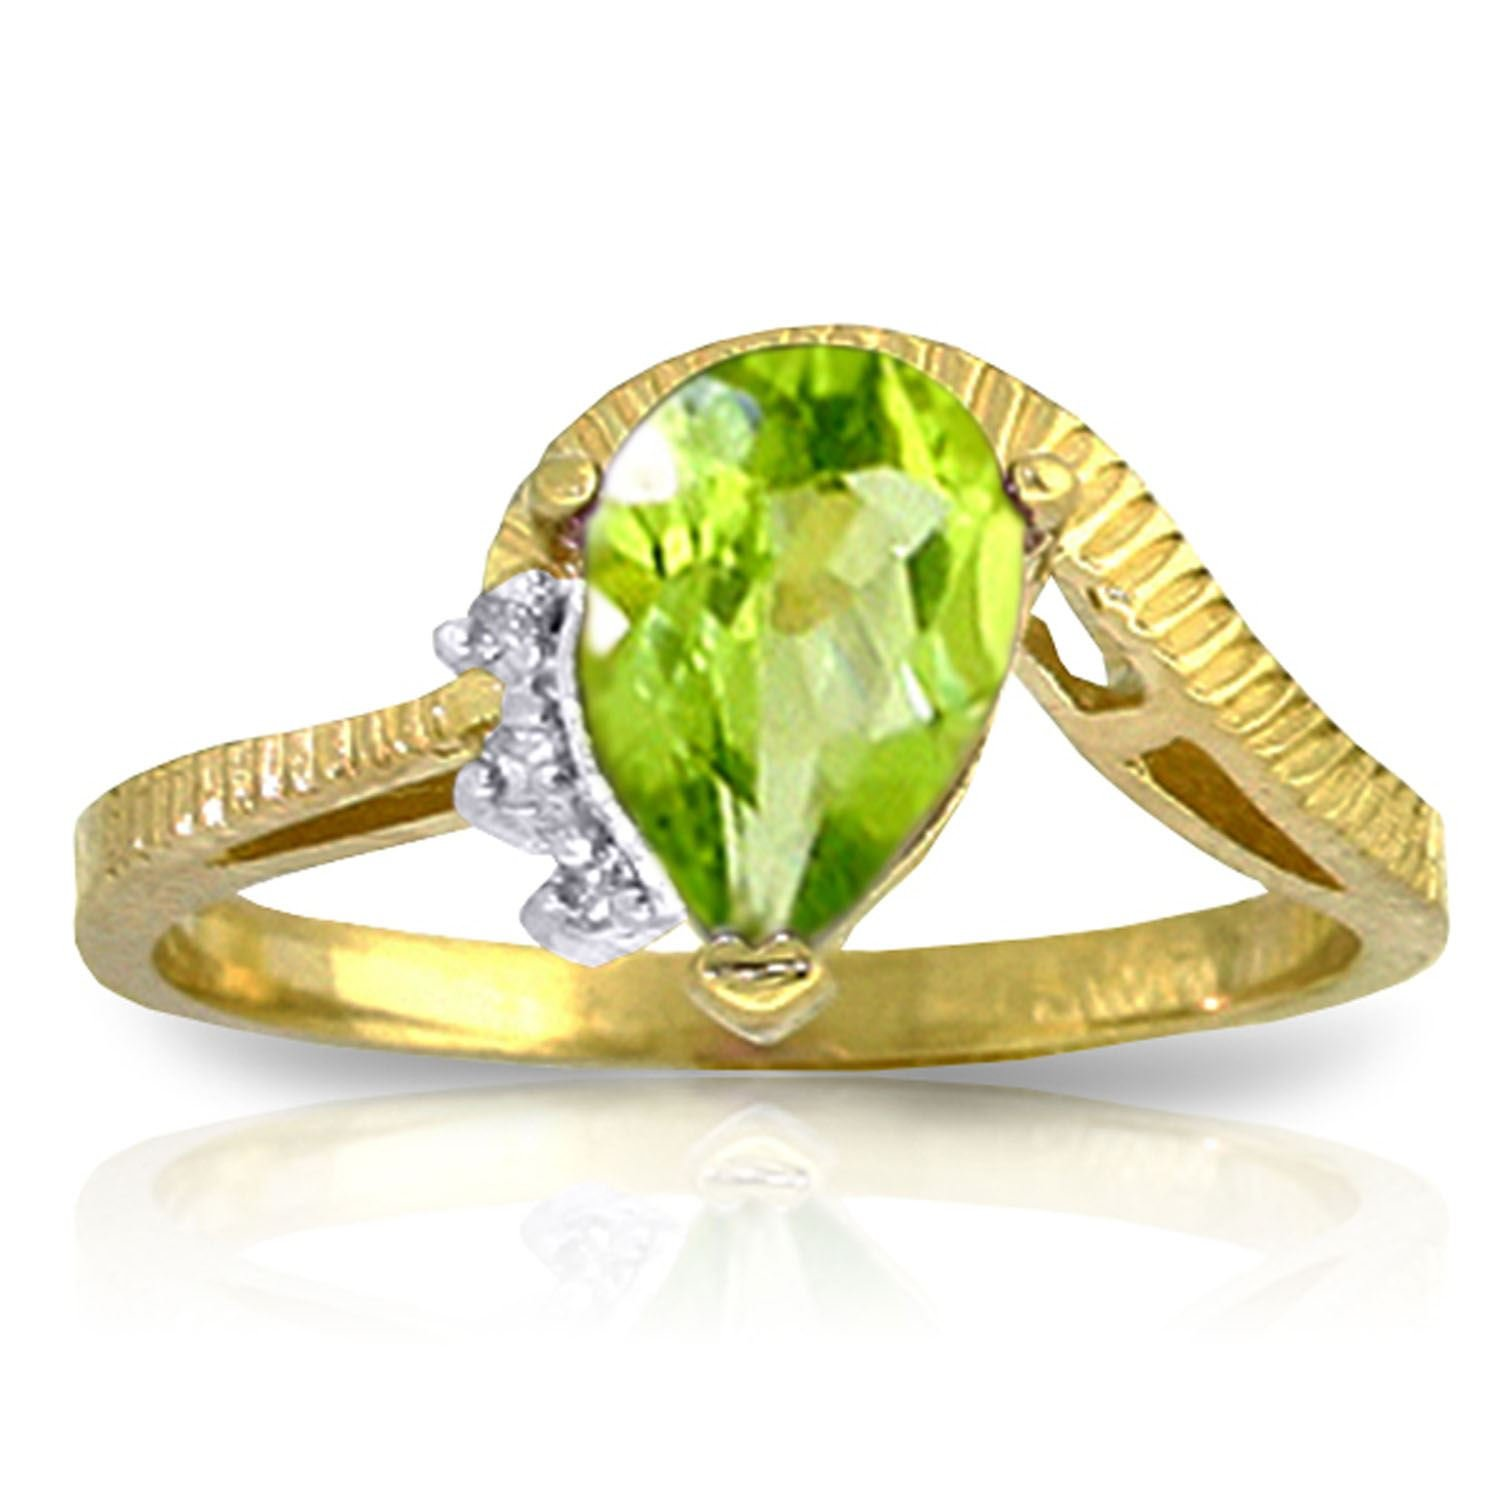 ALARRI 1.52 CTW 14K Solid Gold Love Stems Peridot Diamond Ring With Ring Size 8.5